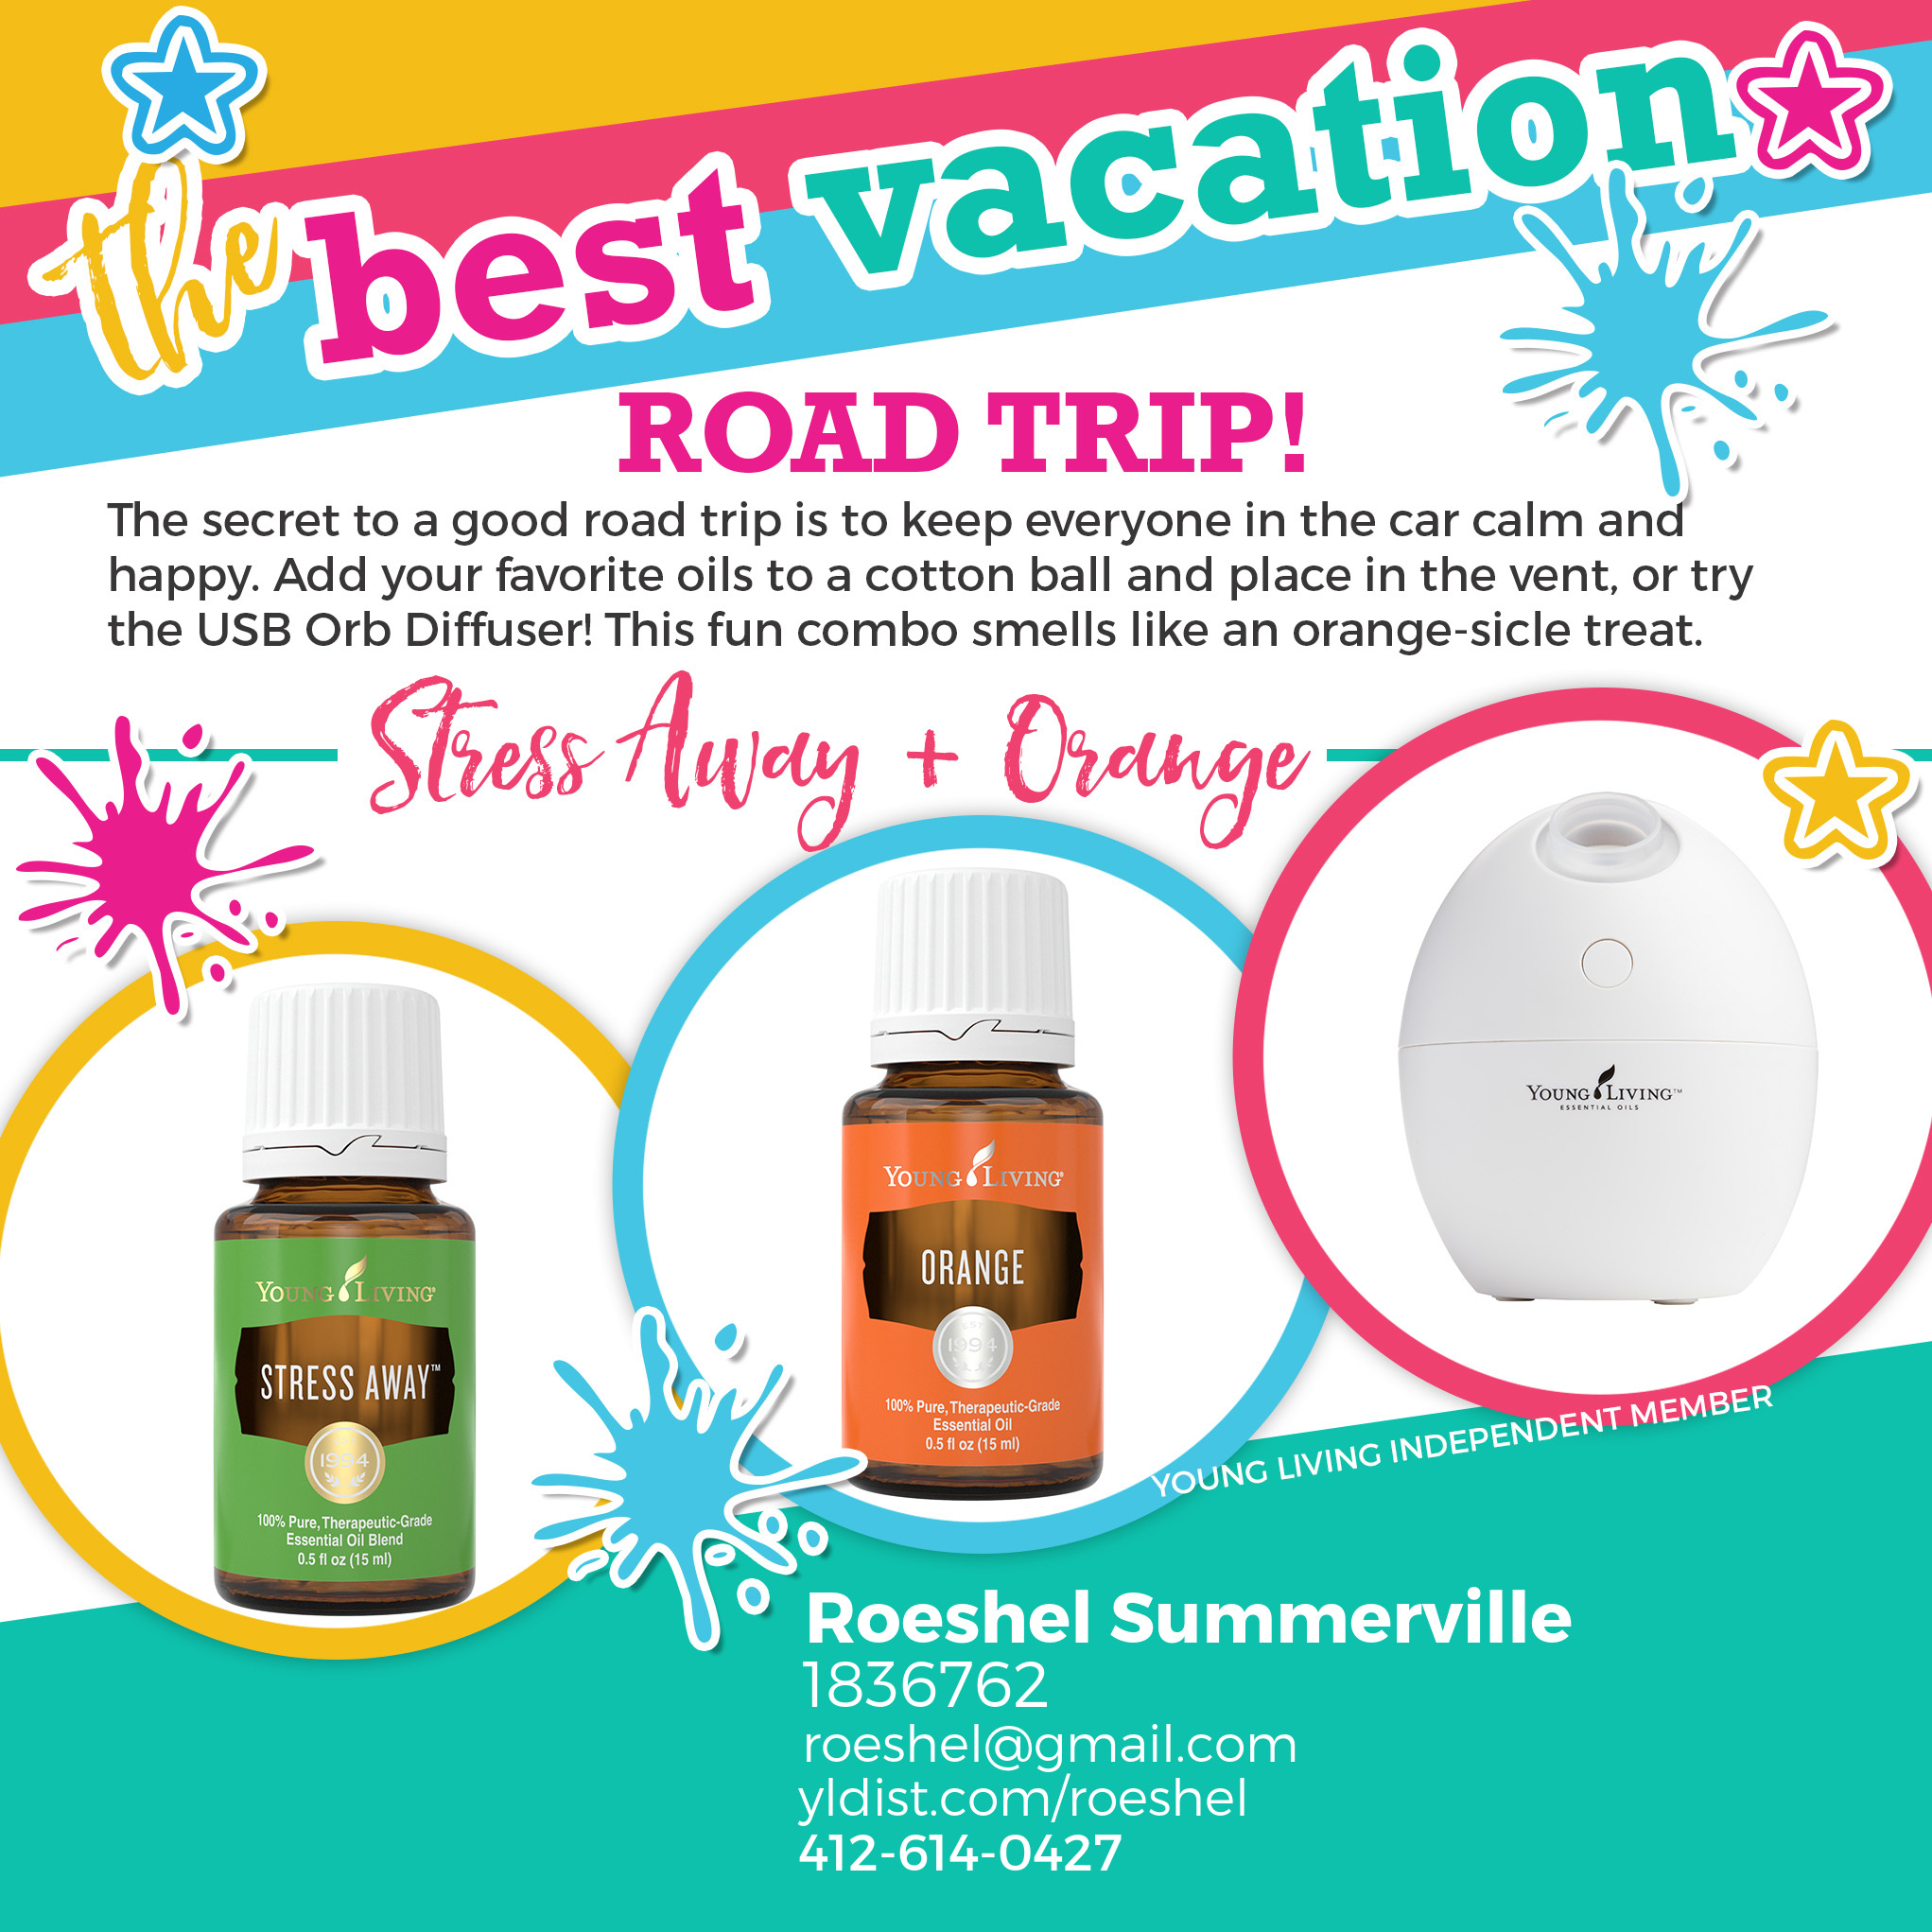 summer fun with essential oils @diyshowoff